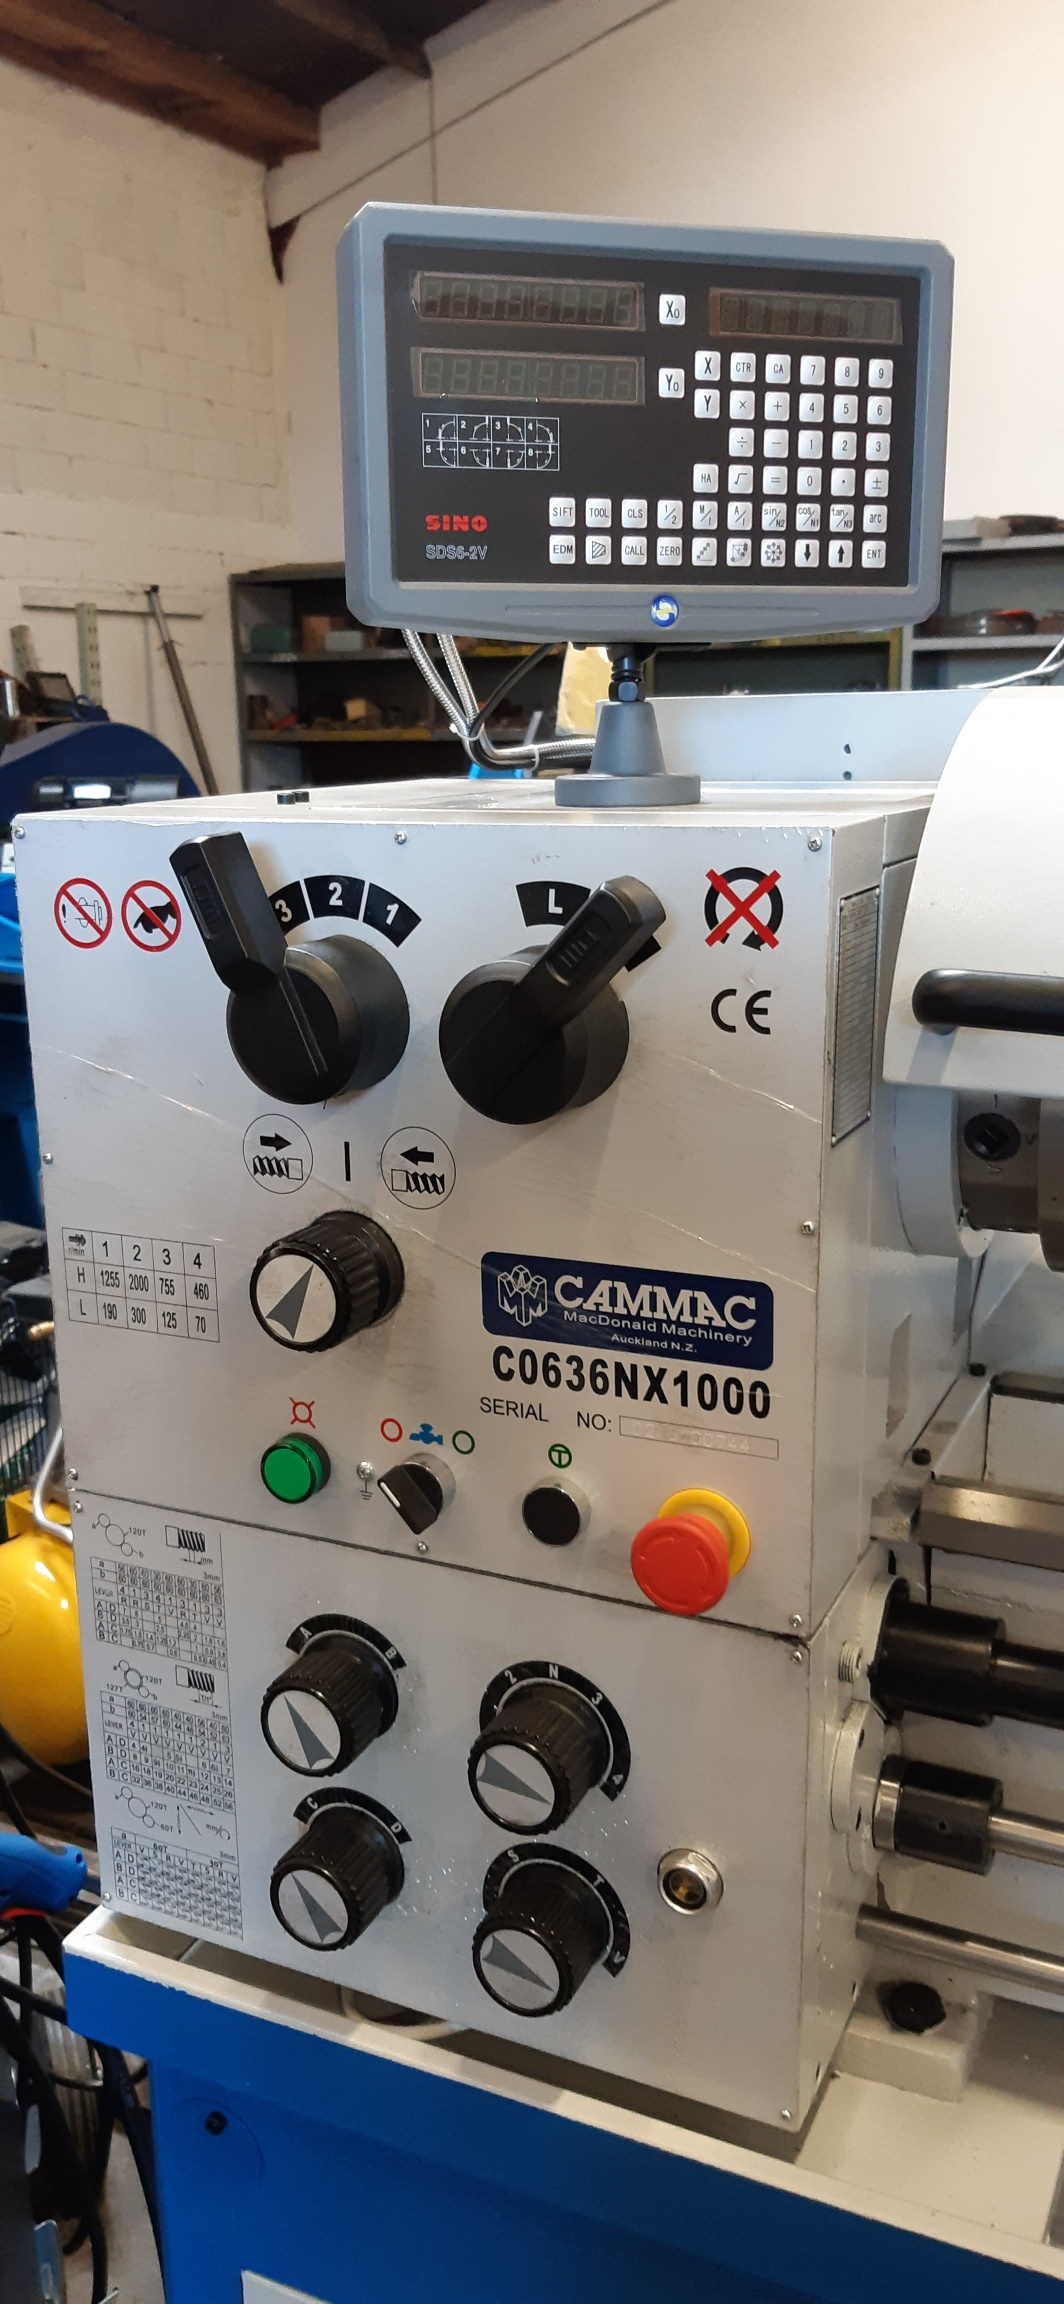 Lathe Cammac CO636N/1000 New $8450+gst single phase 2hp, 52mm spindle, 360swing (480 in gap) 1000mm between centres, DRO coolant pump, light, foot brake, steadies